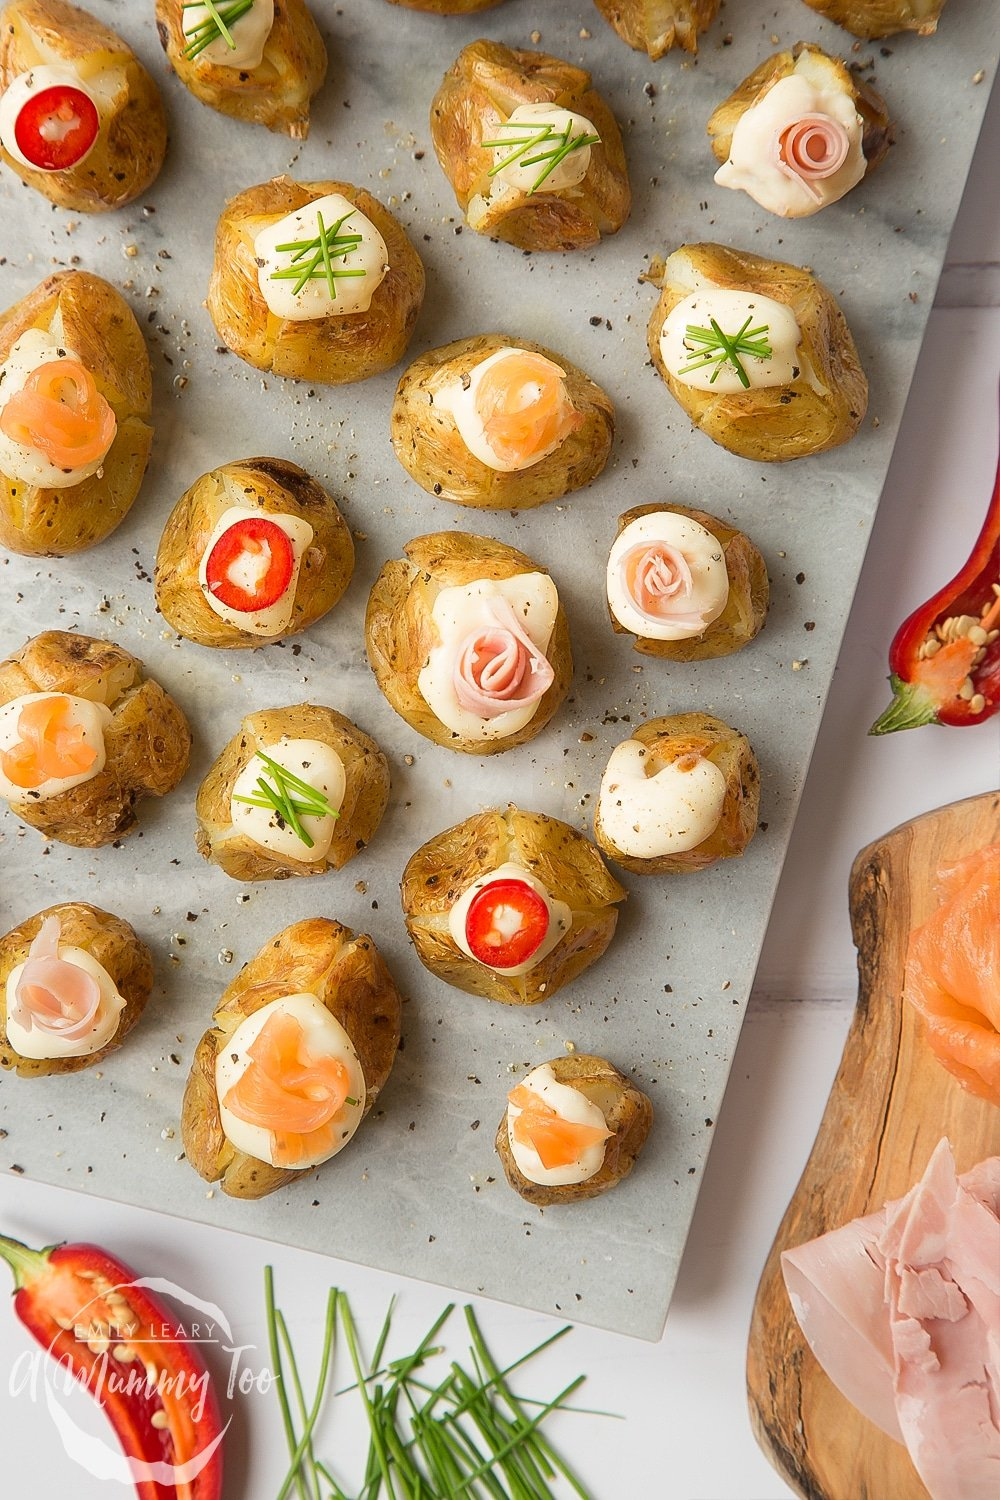 Delicious stuffed mini baked potatoes, ready to serve at a party or on Christmas Eve as a starter